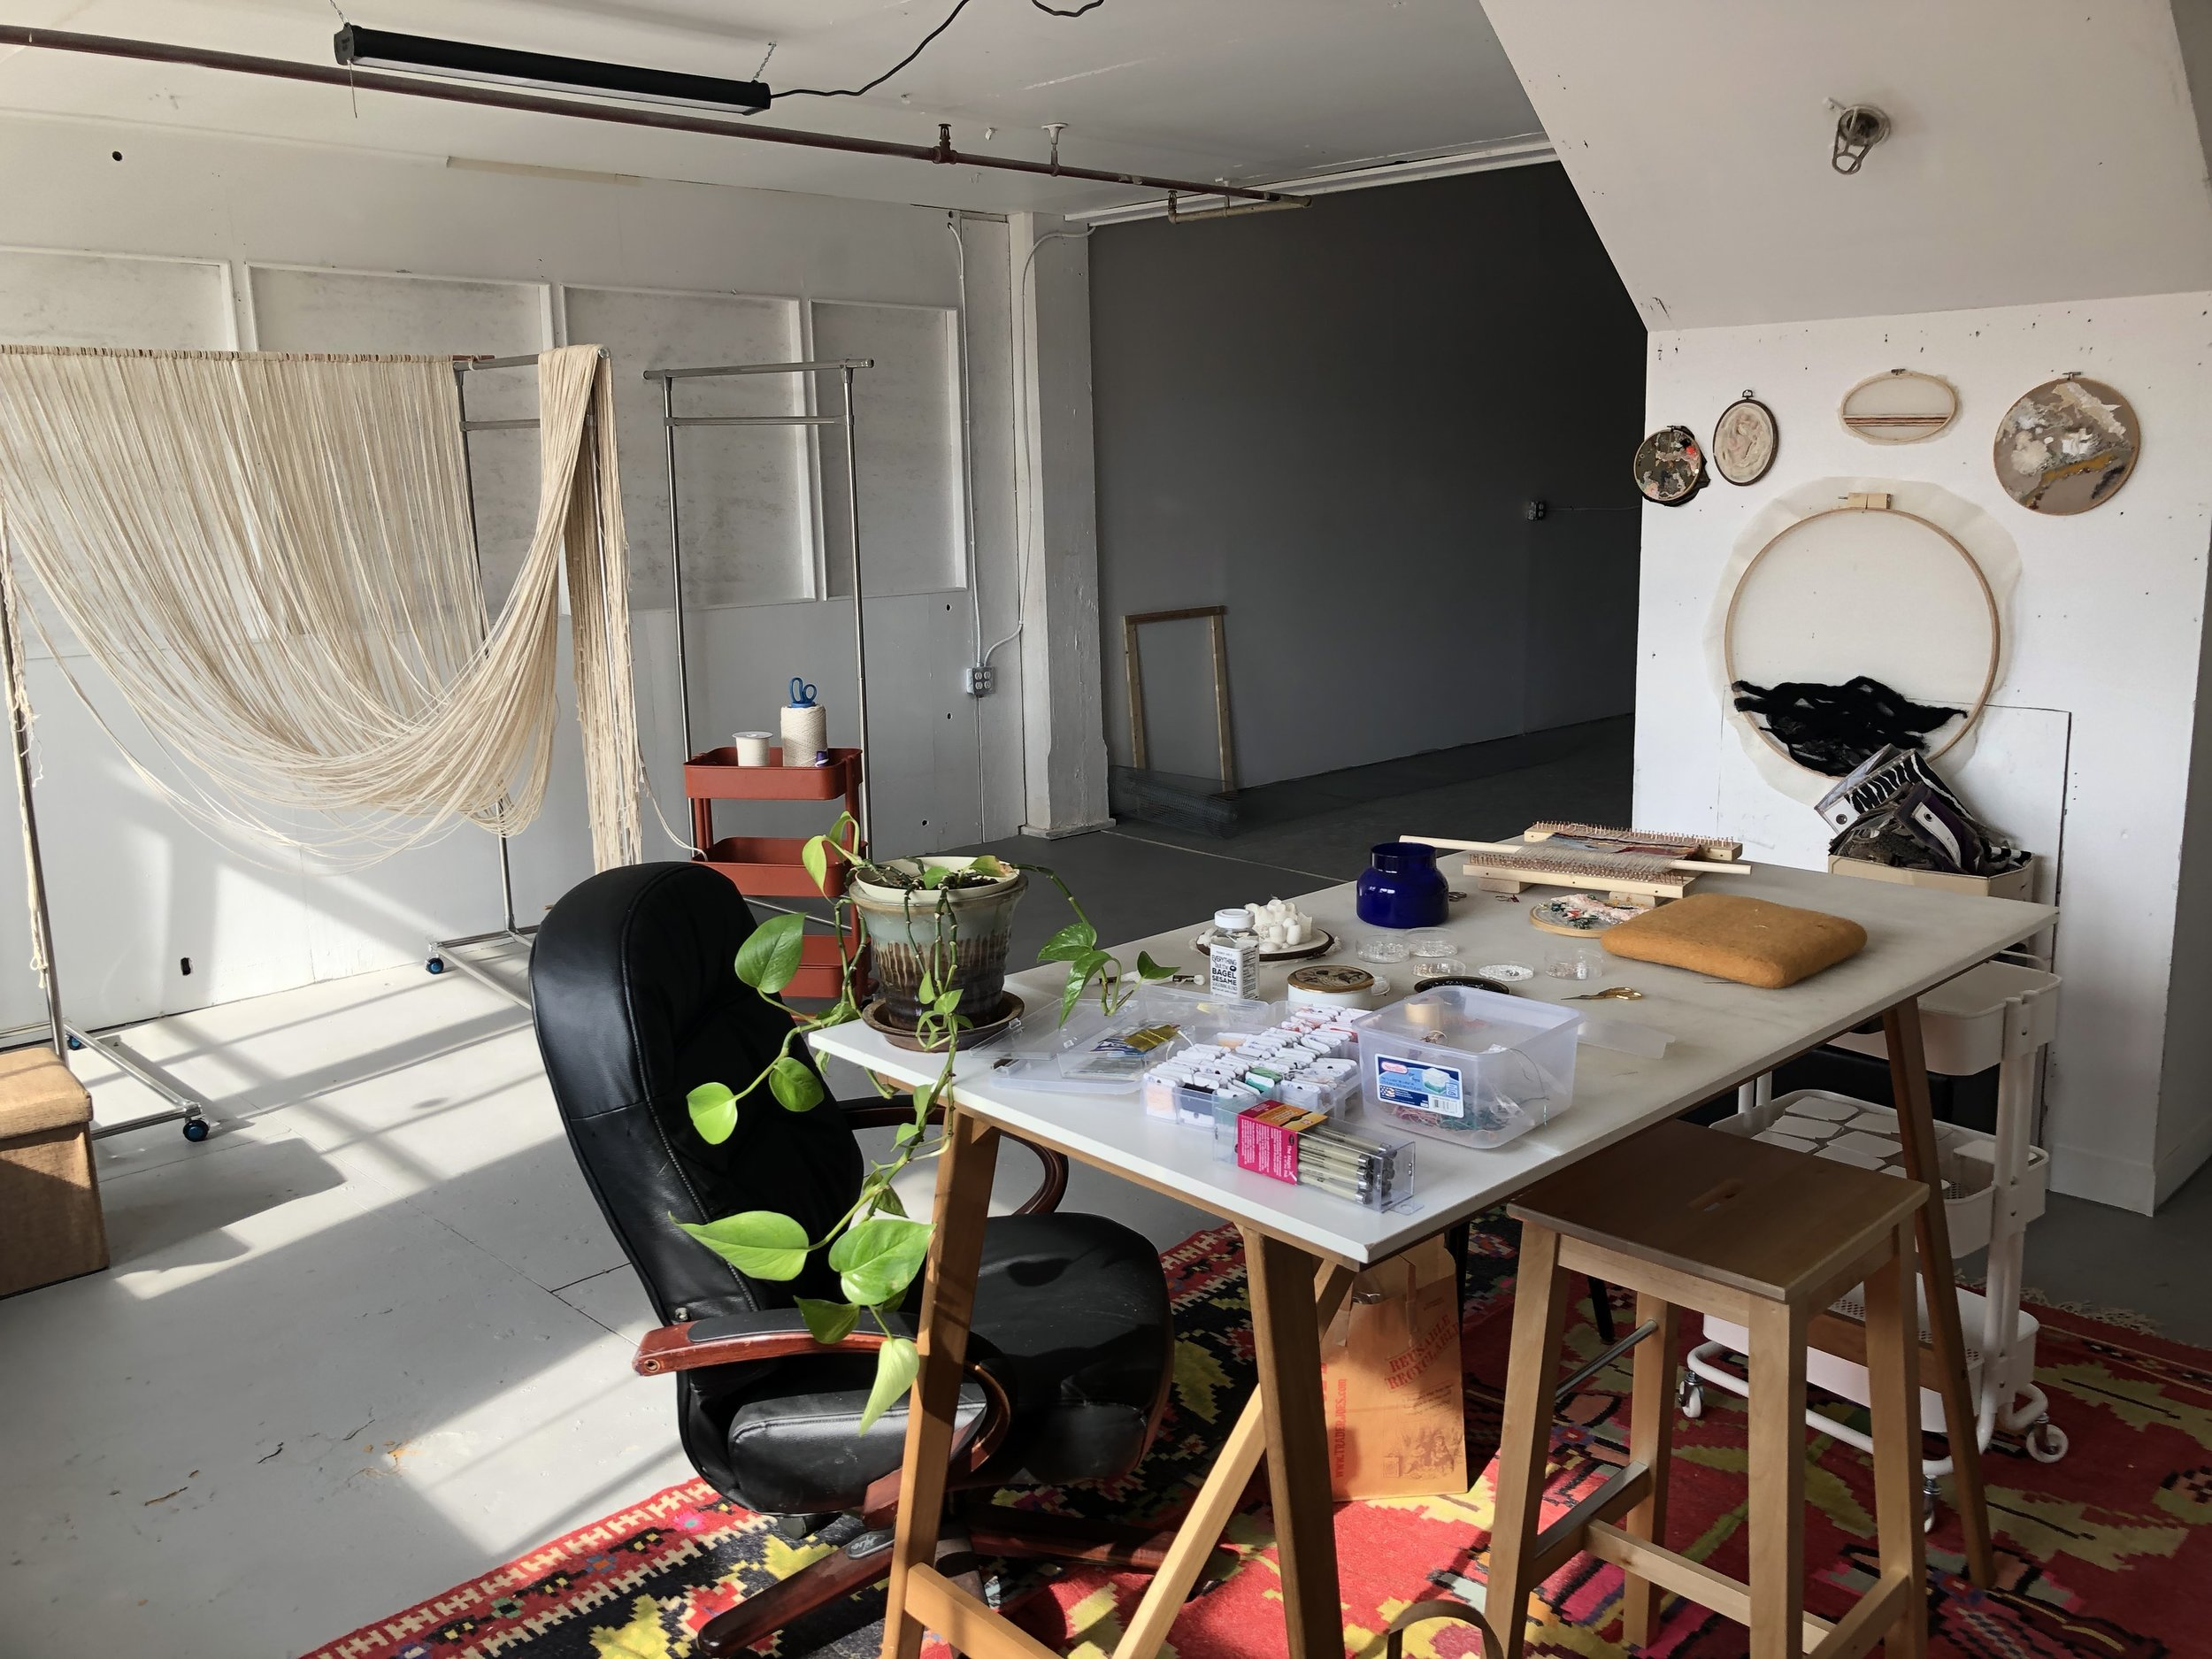 Donations - The project space is self-funded by me, Carrie Chema, to encourage and support art initiatives in whatever small way that I can. While it is free to use the space, donations of any size are greatly appreciated and go directly towards the studio operations.